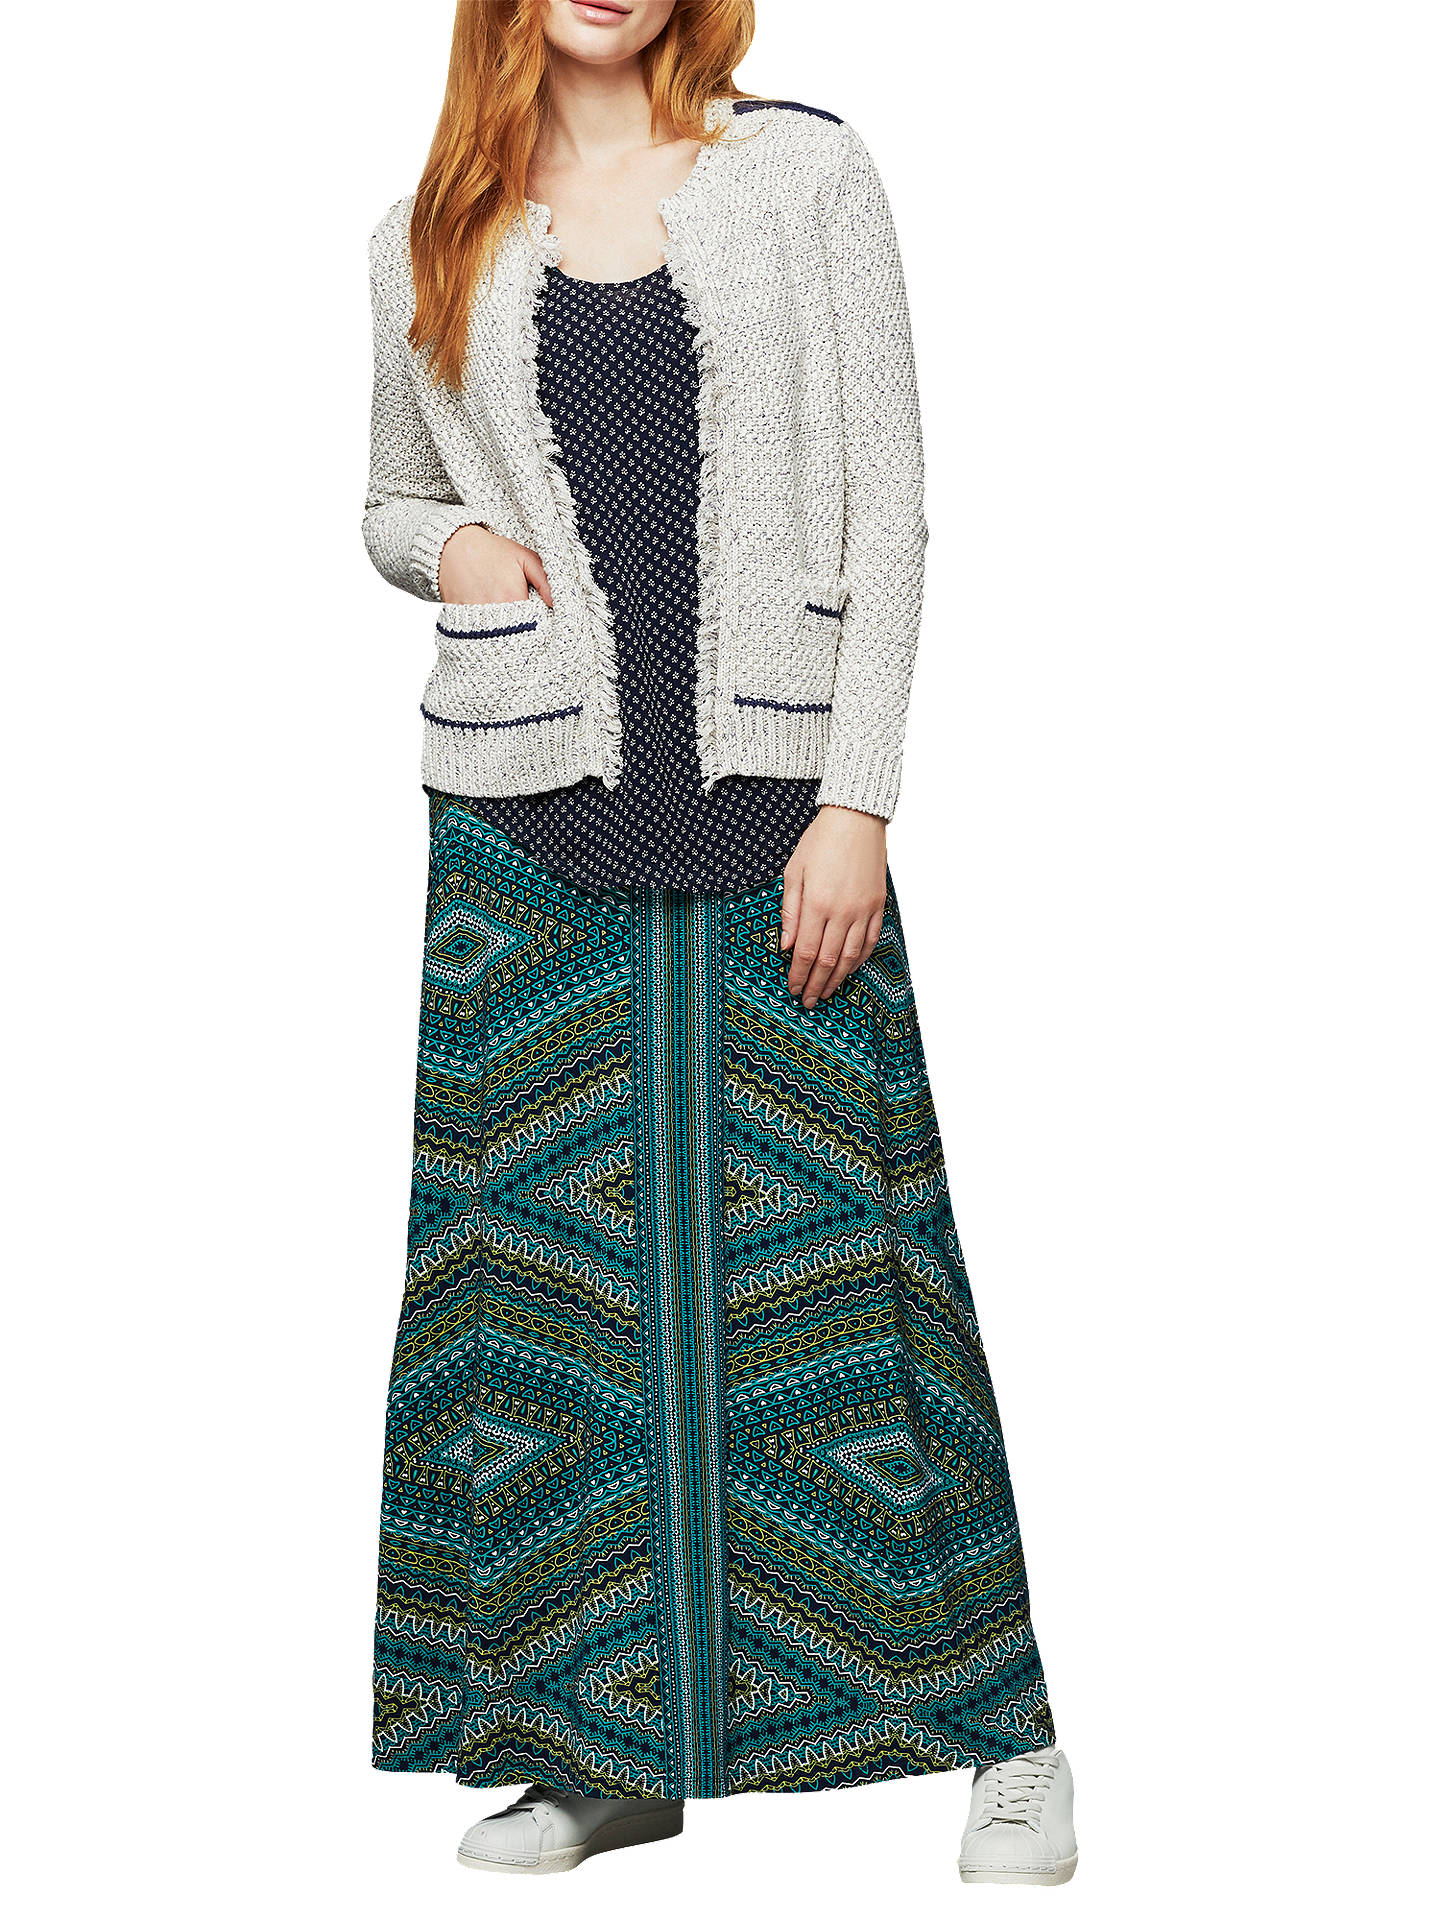 BuyEast Slub Cropped Cardigan , Calico, S Online at johnlewis.com